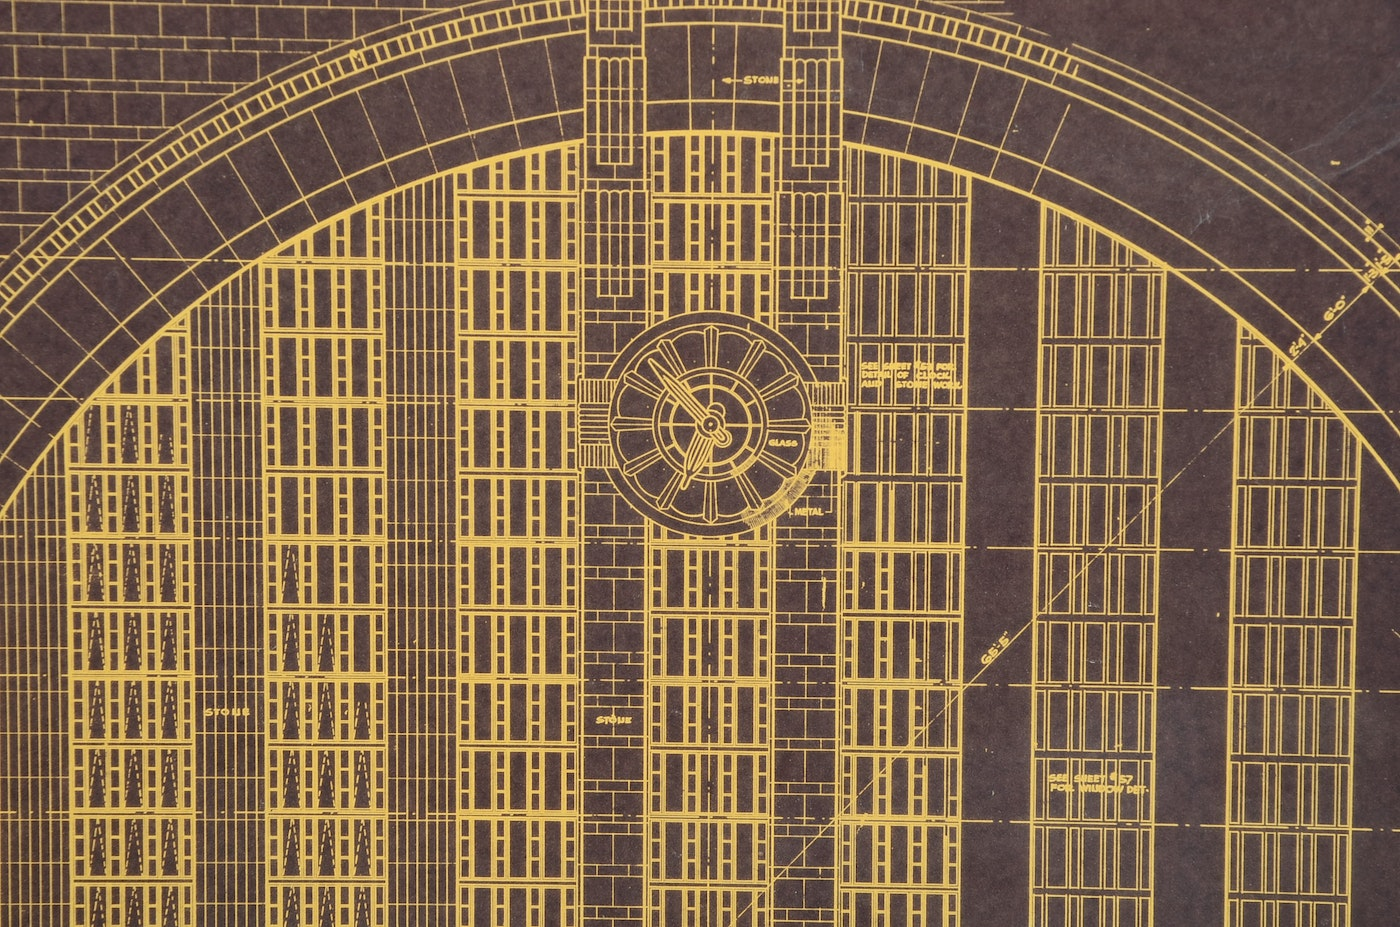 Print of 1931 architectural drawings of union terminal for Printing architectural drawings